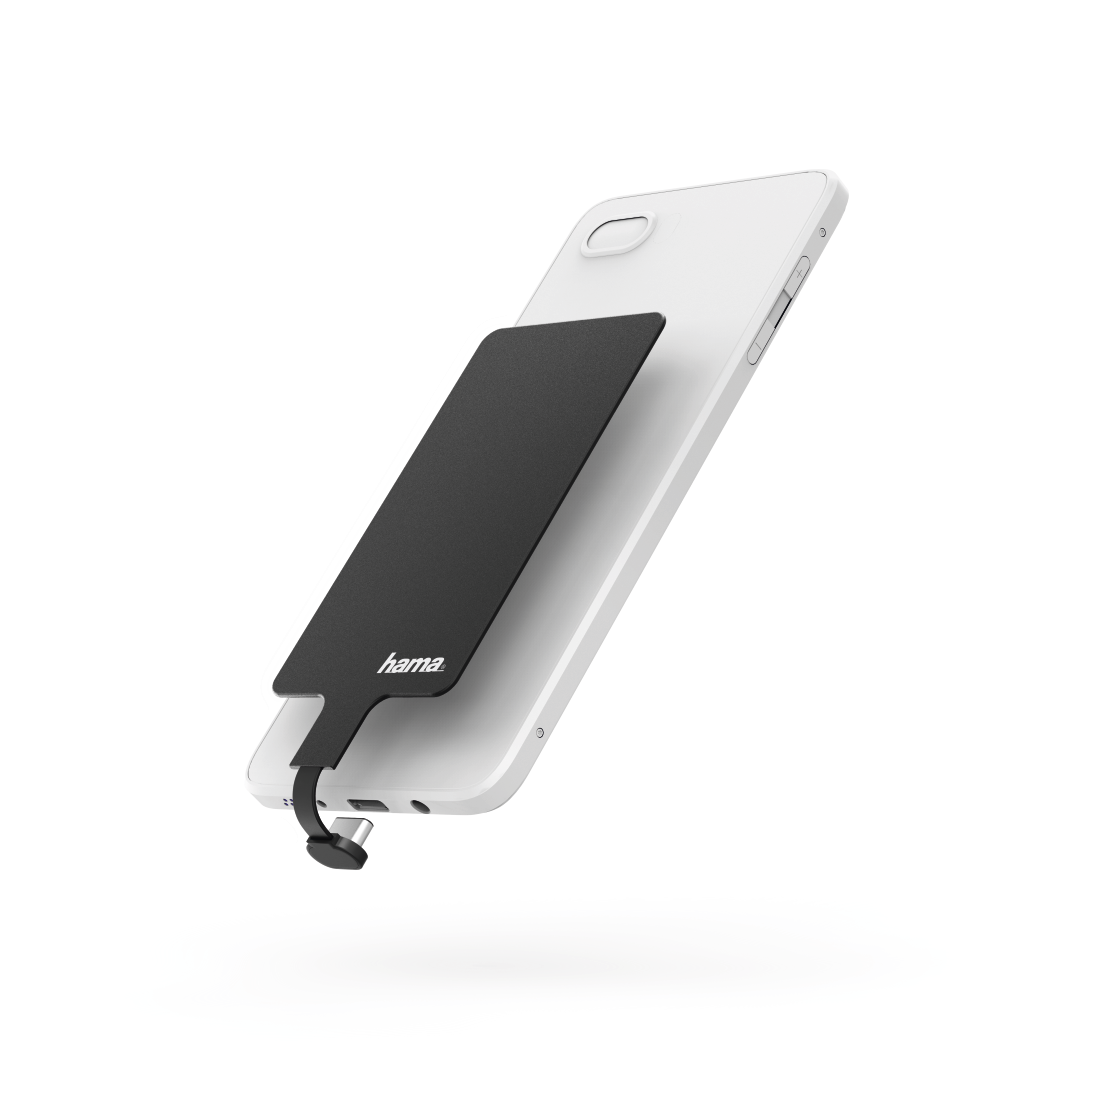 abx High-Res Image - Hama, Wireless Charging Adapter for Smartphones, USB Type-C, 800 mA, black